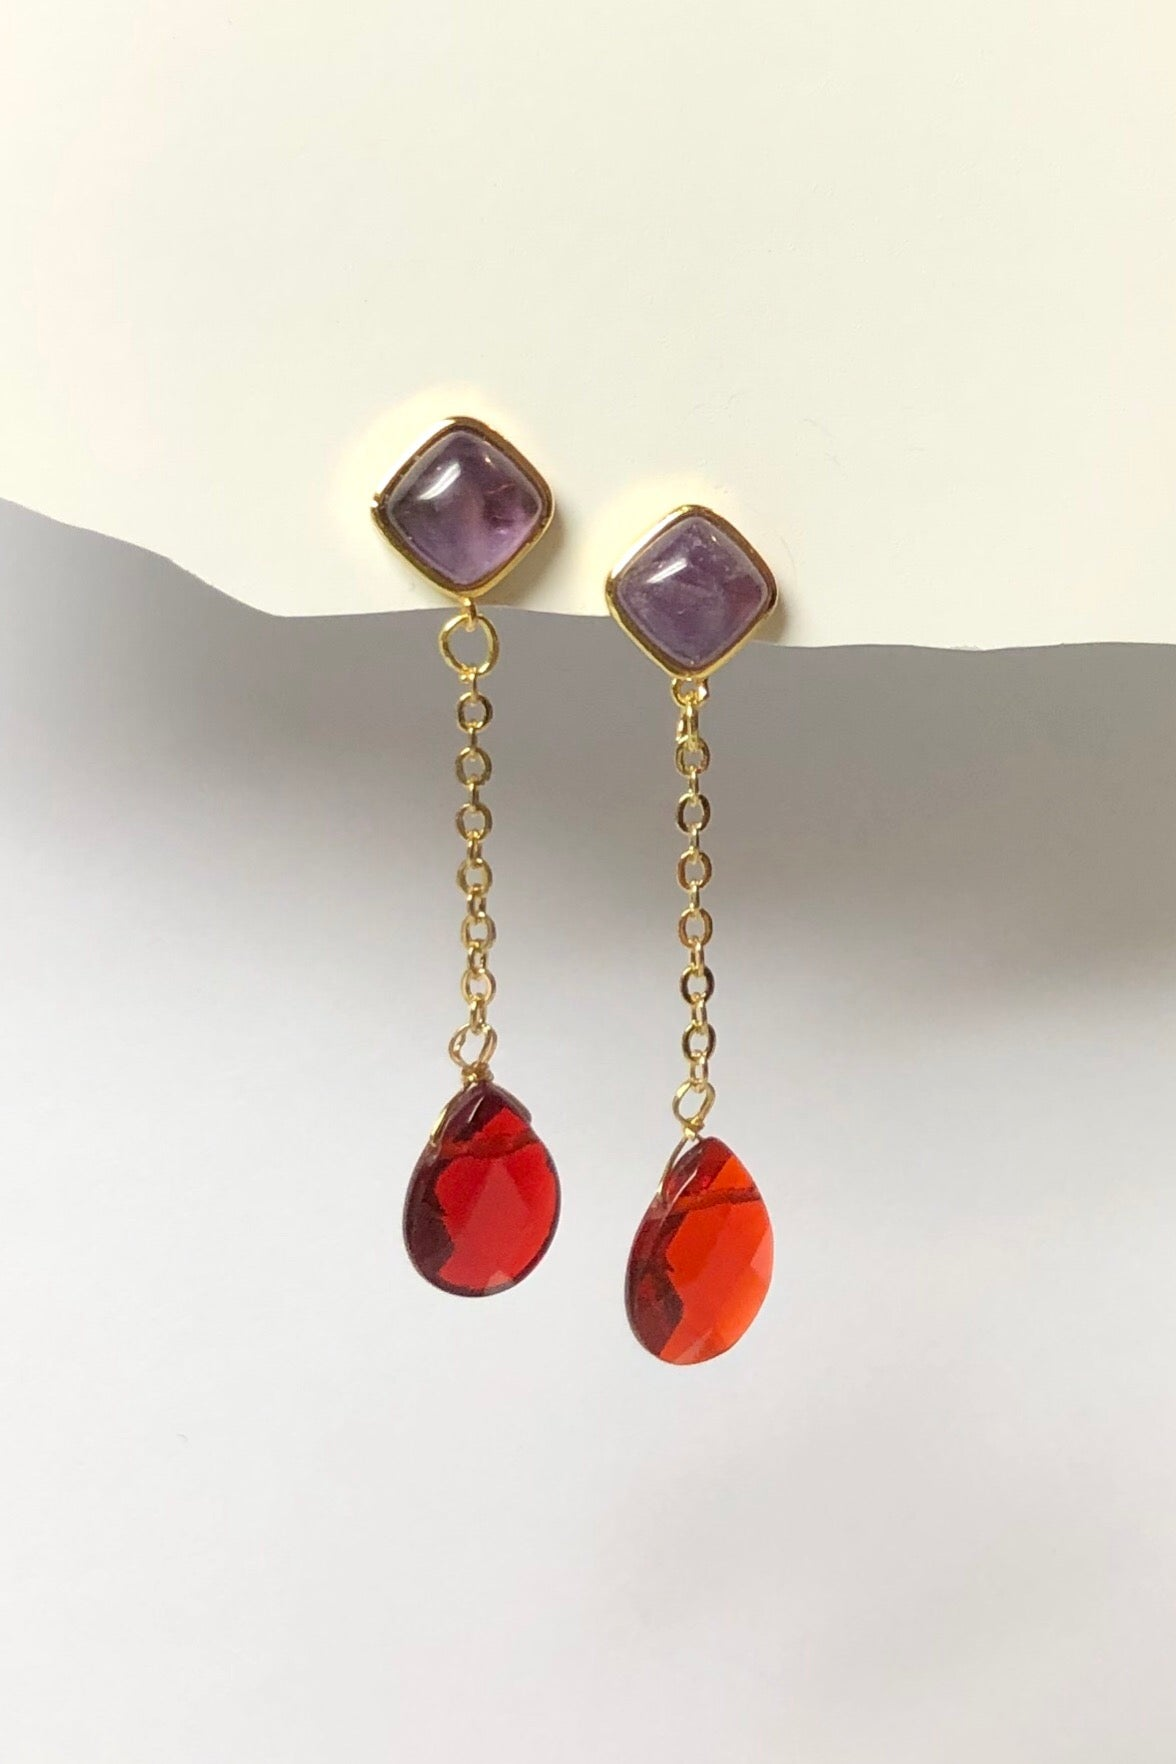 Earrings Serendipity Amethyst Drop are made from natural  Quartz stone, These sweet stunners have real Amethyst accents